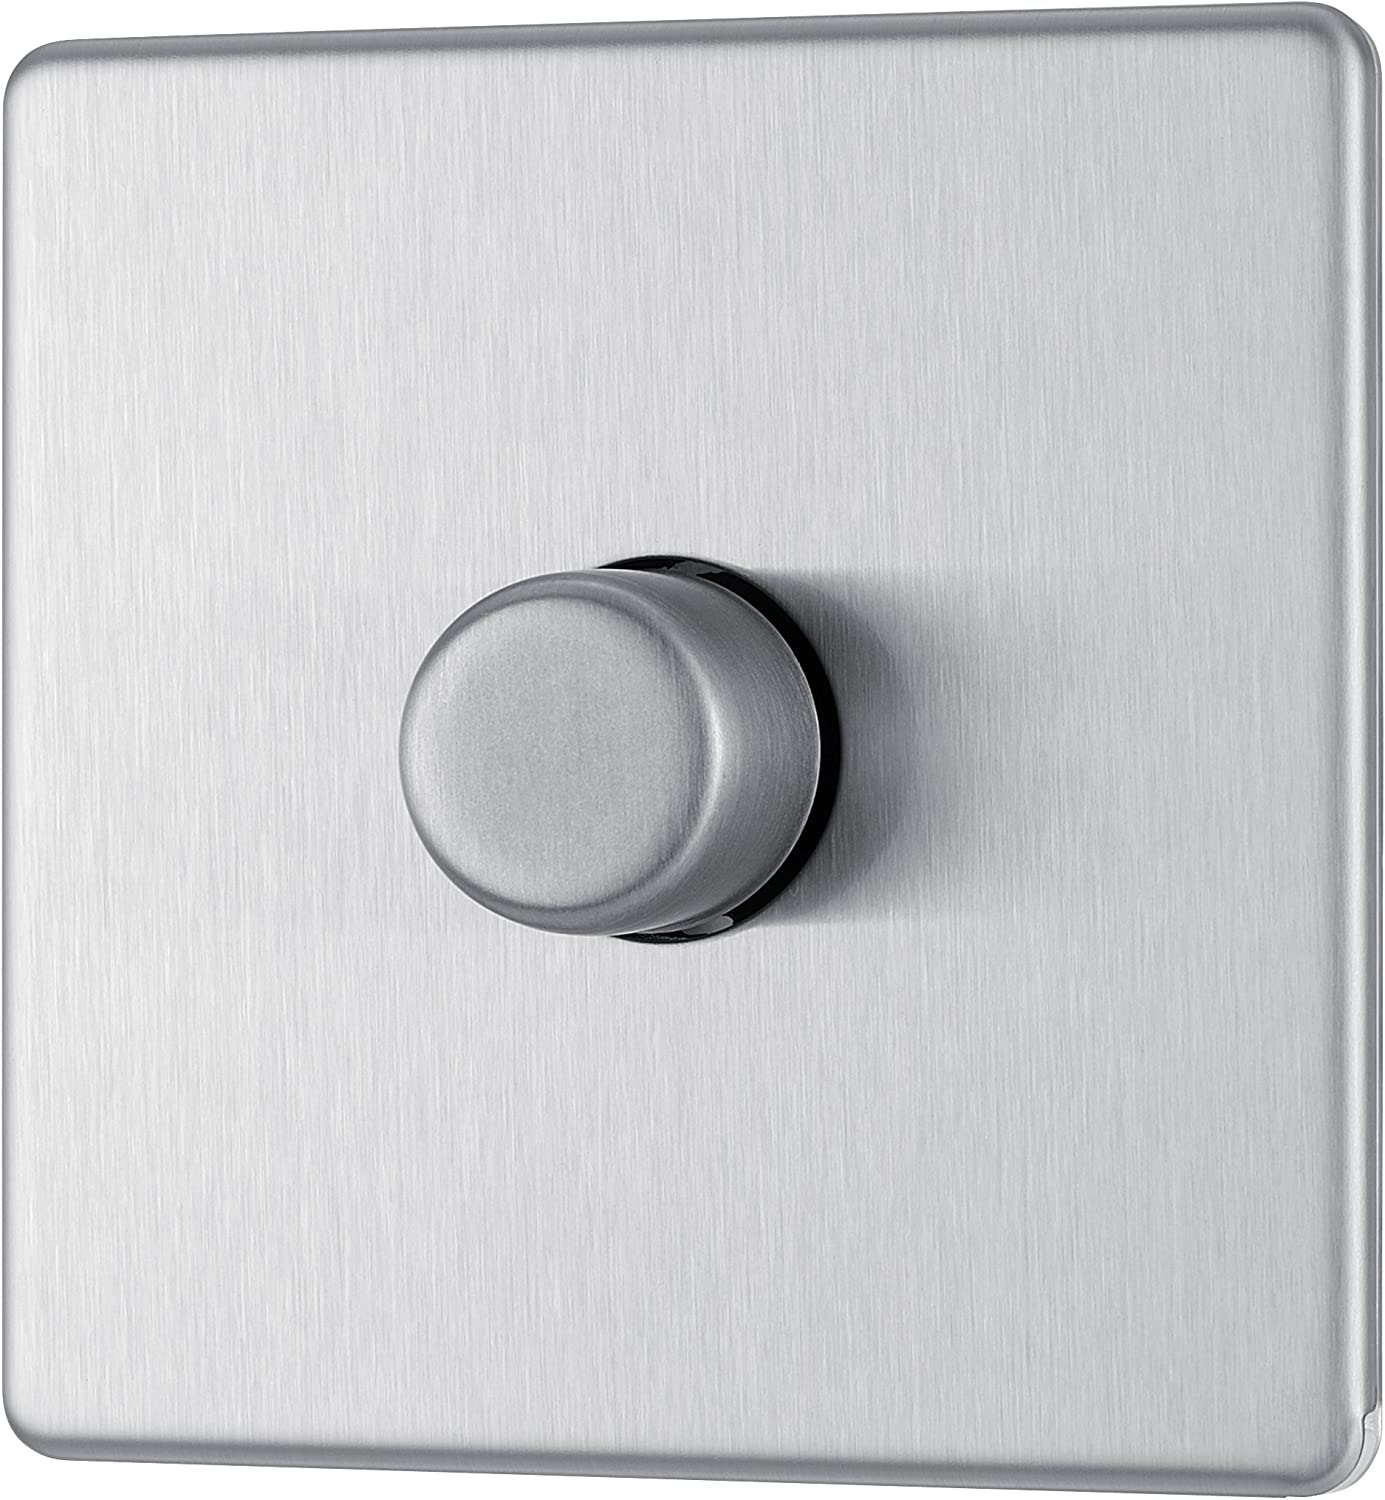 Plug Sockets Dimmers Flat Plate Brushed Stainless Steel FSS3 Light Switches